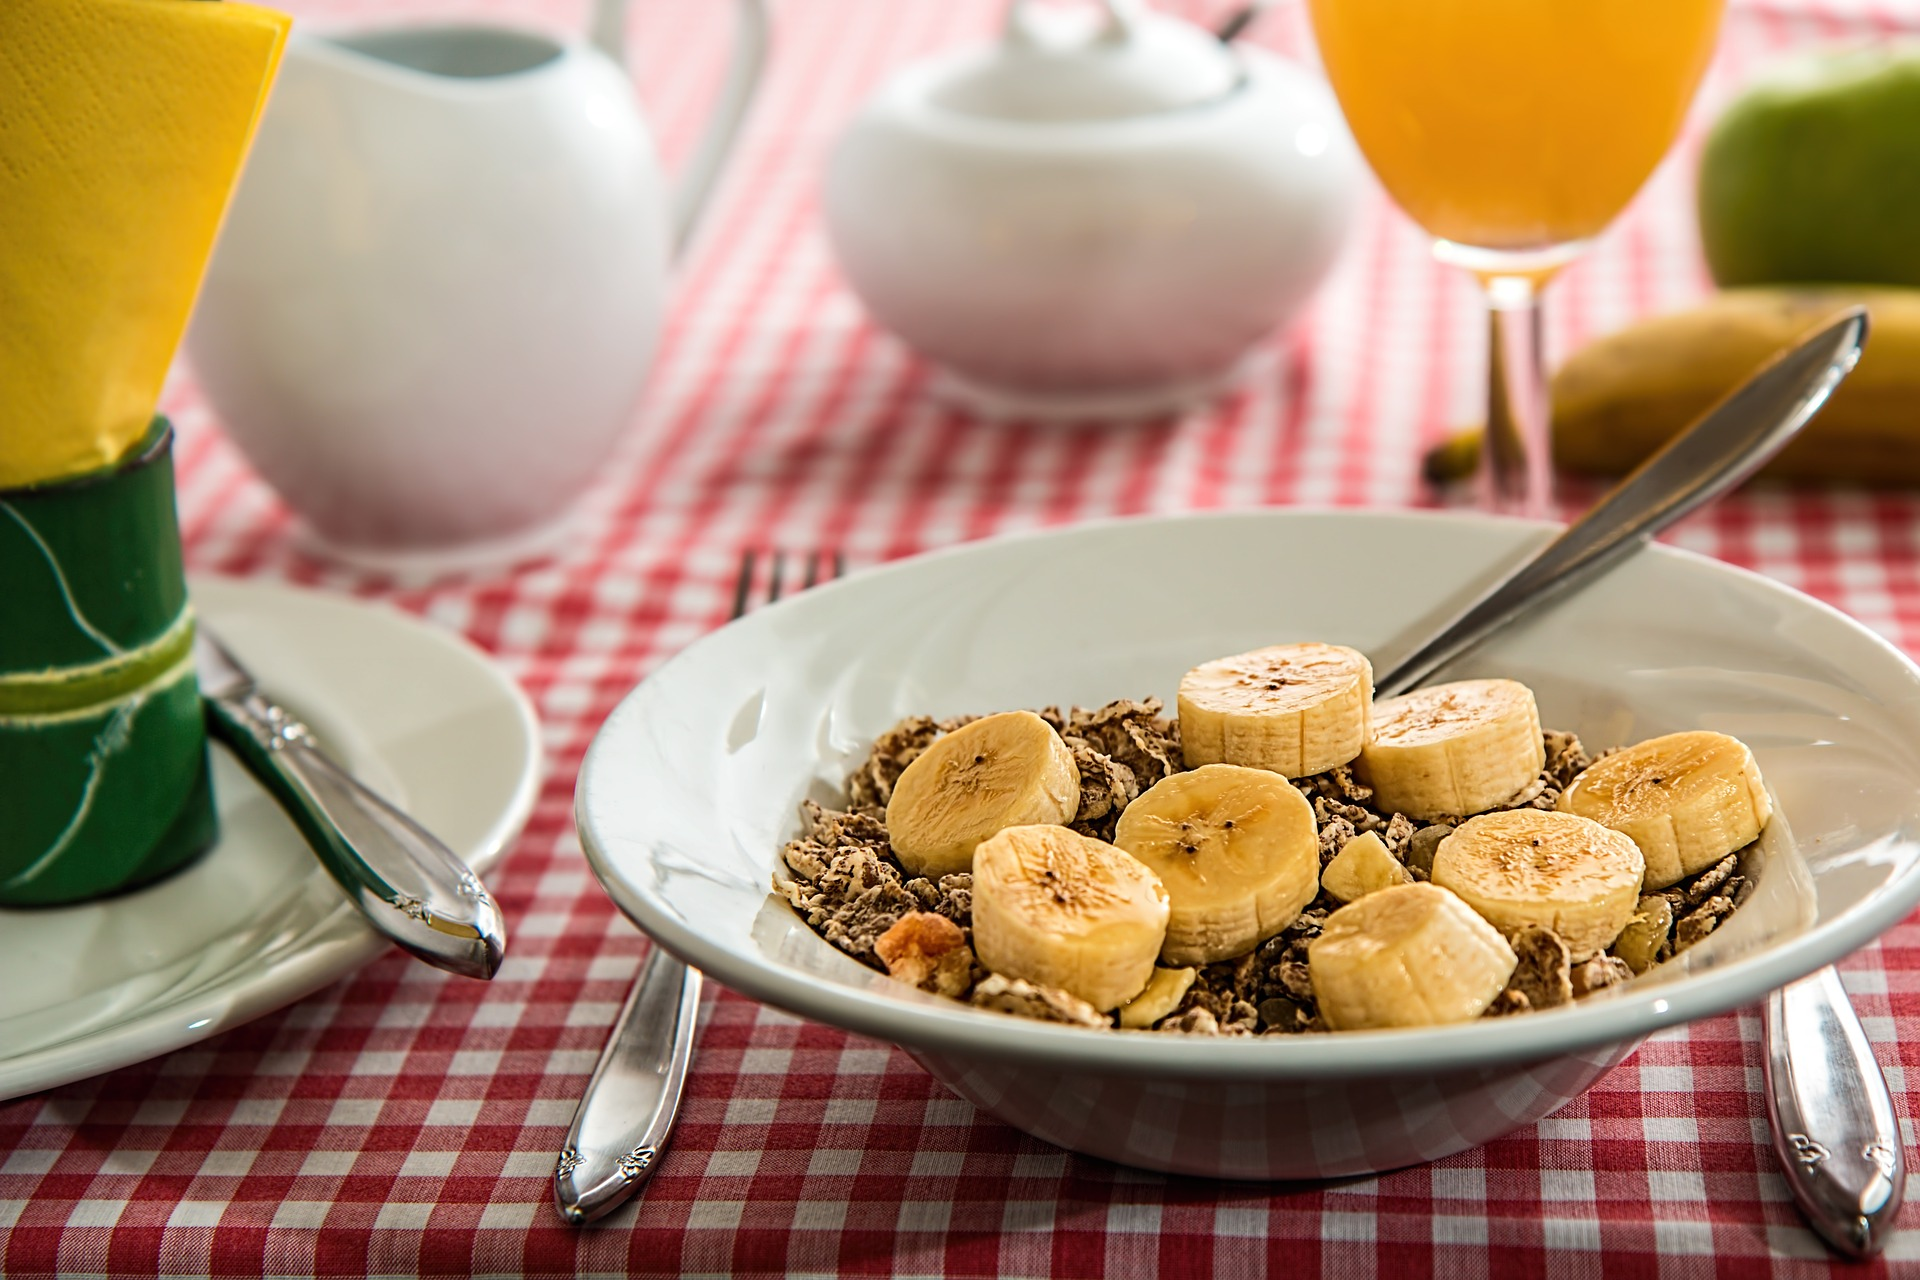 cereal-898073_1920